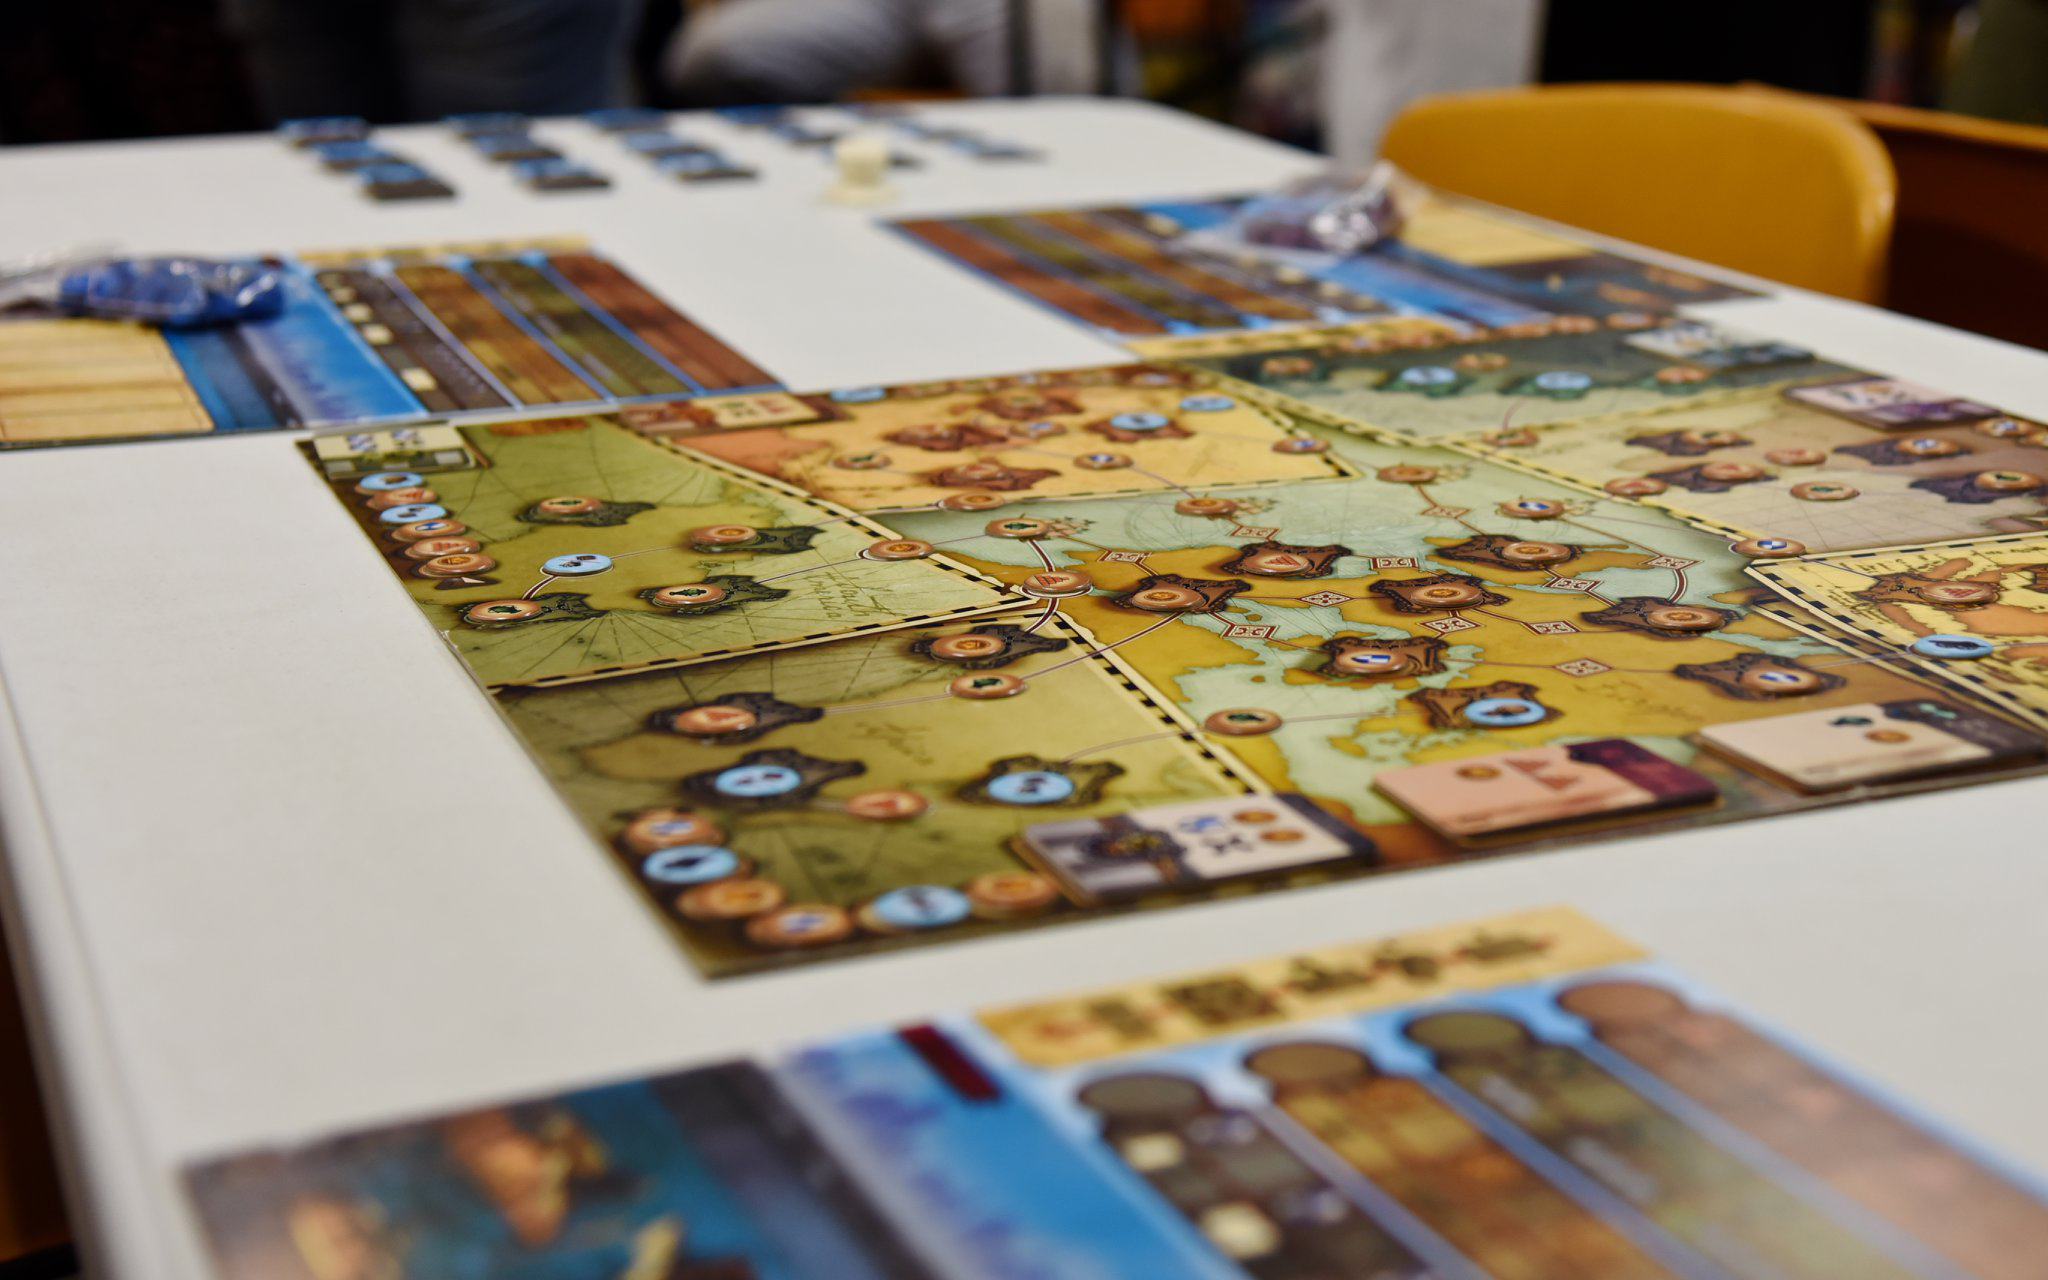 Grand Gamers Guild produces board games for hours of fun.